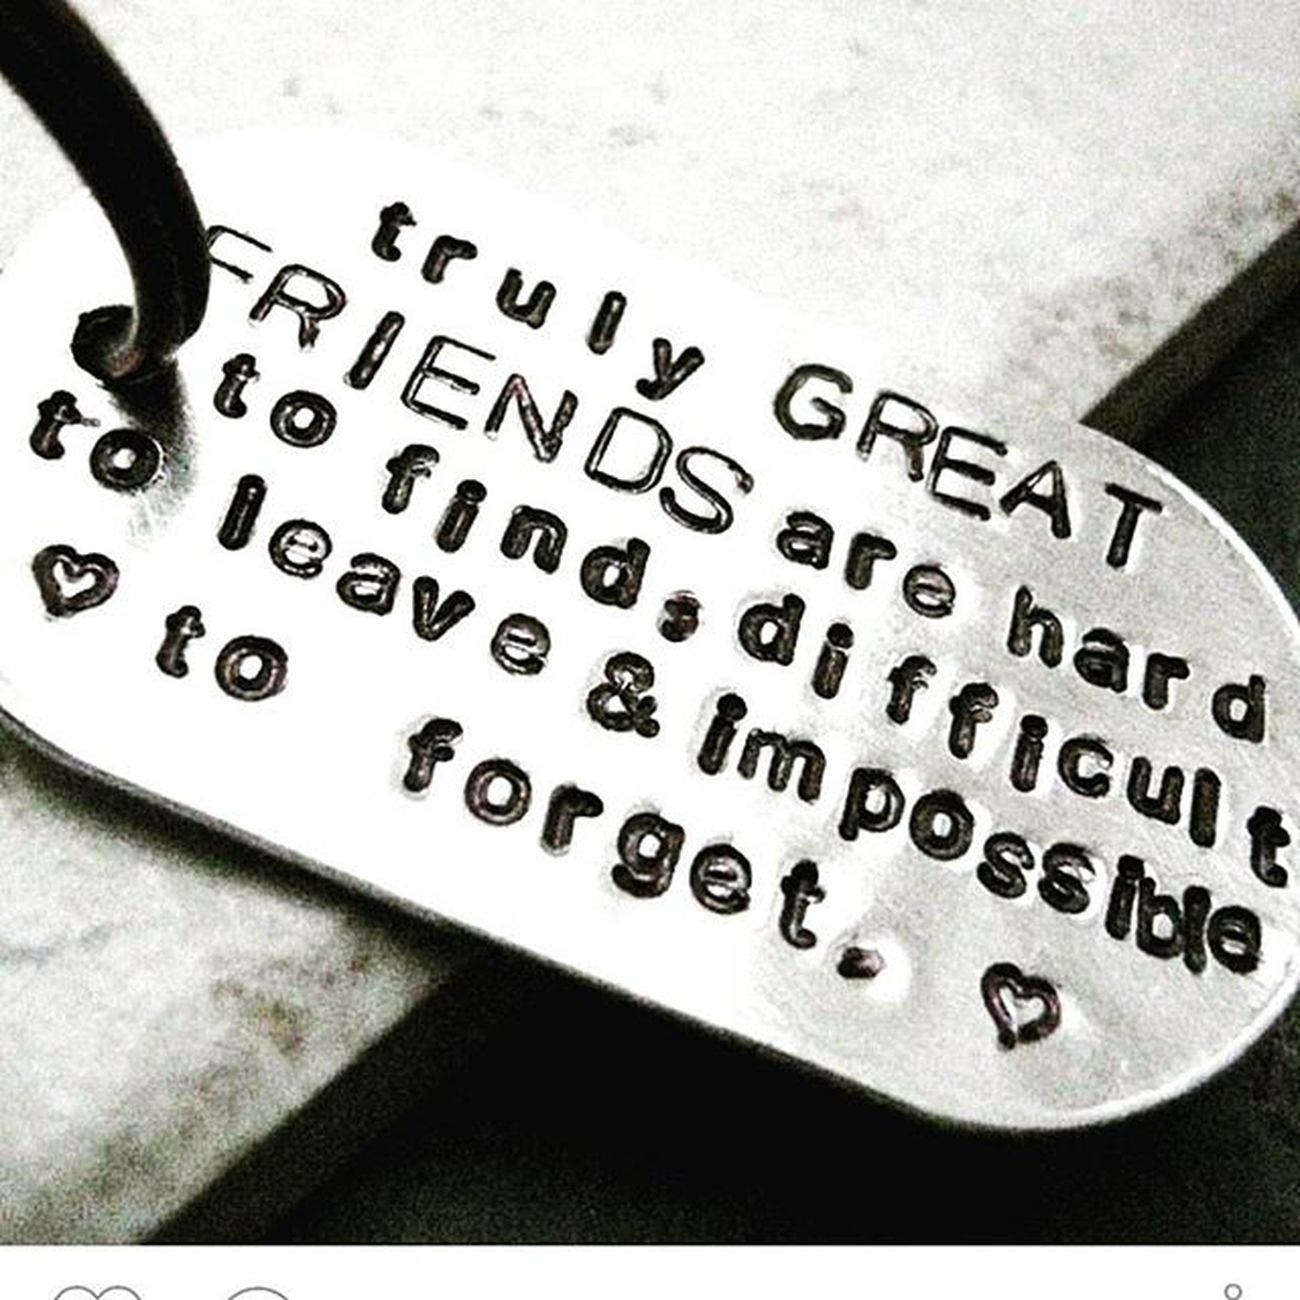 HappyFriendshipDay Friendship Lifequote Life Love Friends Instaquote Instalikes Fact Likesforlikes Bestfriend Hard Lastsforever Alwaysthereforme